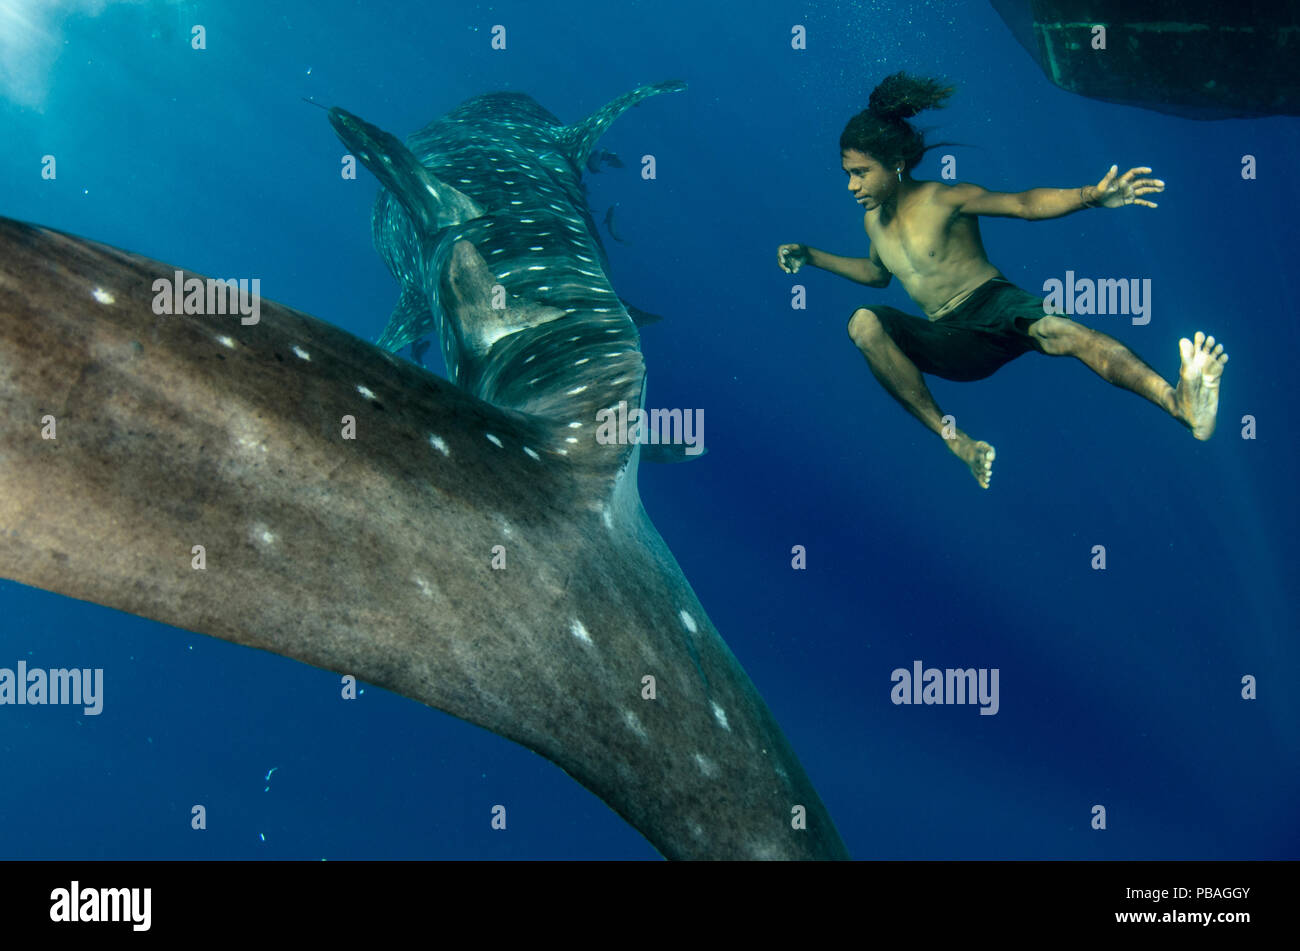 Whale Shark (Rhincodon typus) and local fisherman freediving, Cenderawasih Bay, West Papua, Indonesia. Winner of the Man and Nature Portfolio Award in the Terre Sauvage Nature Images Awards Competition 2015. - Stock Image